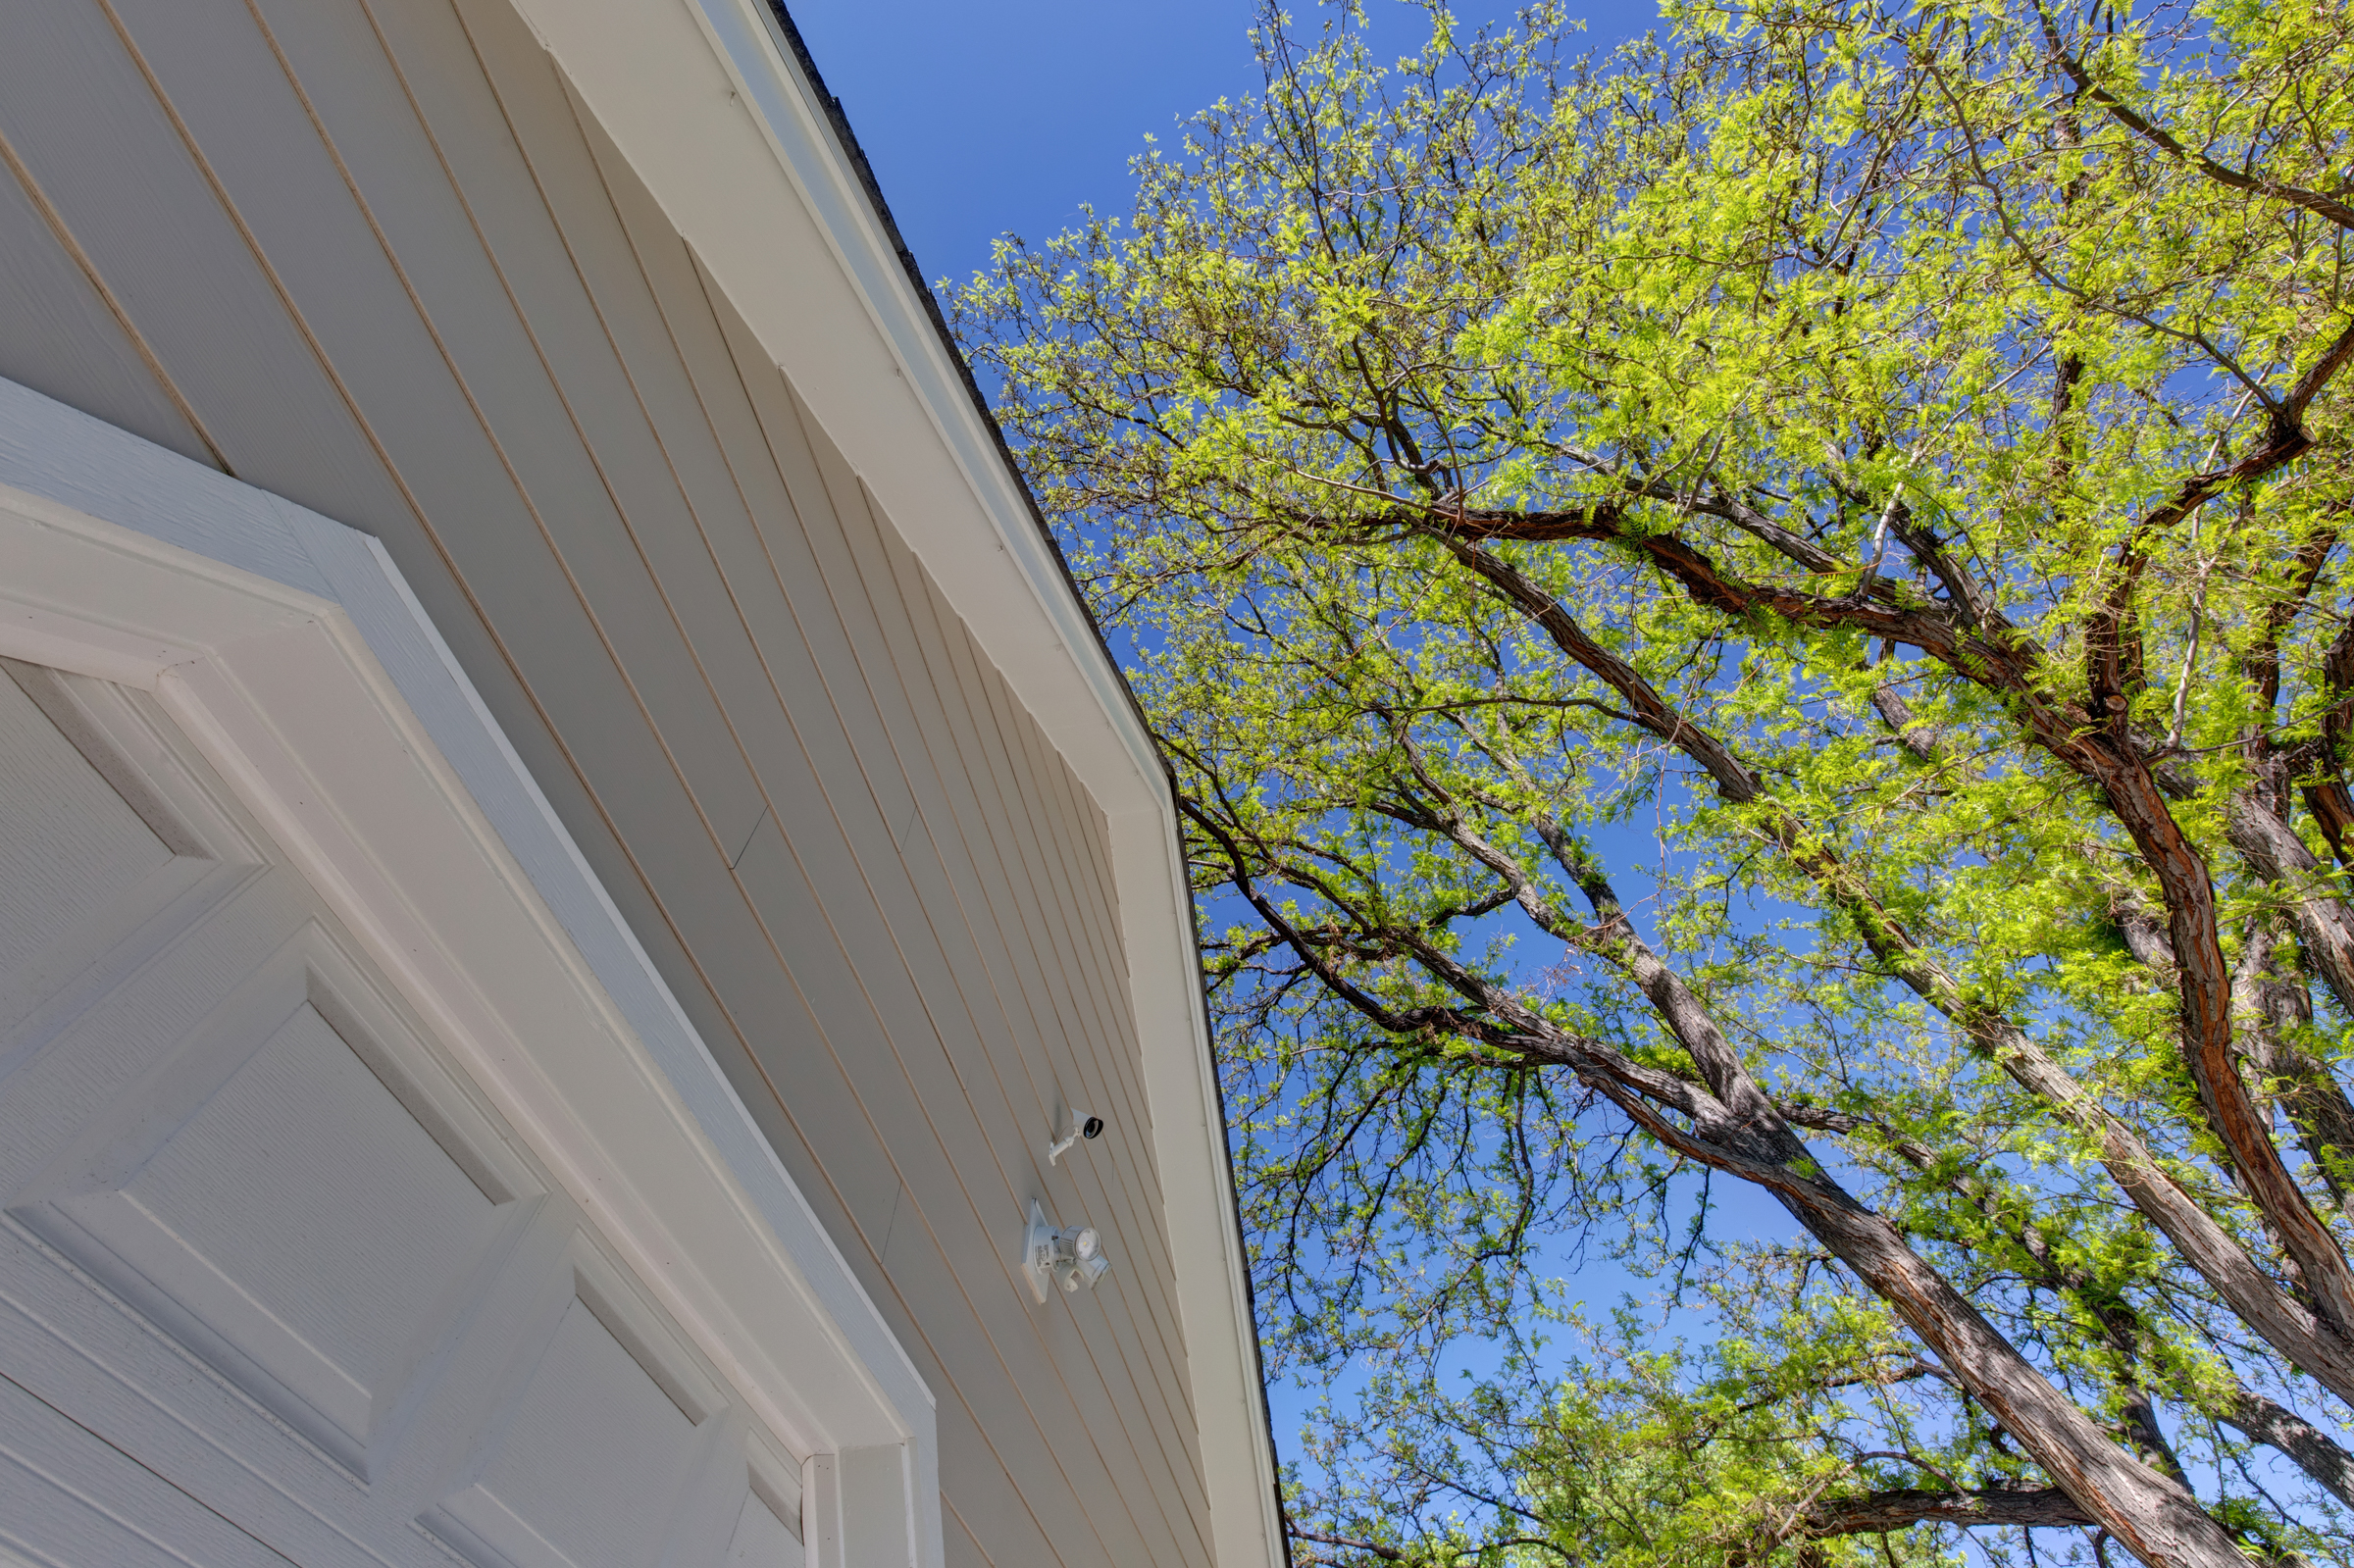 Have An Old Home Exterior? 3 Tips for Exterior Renovations